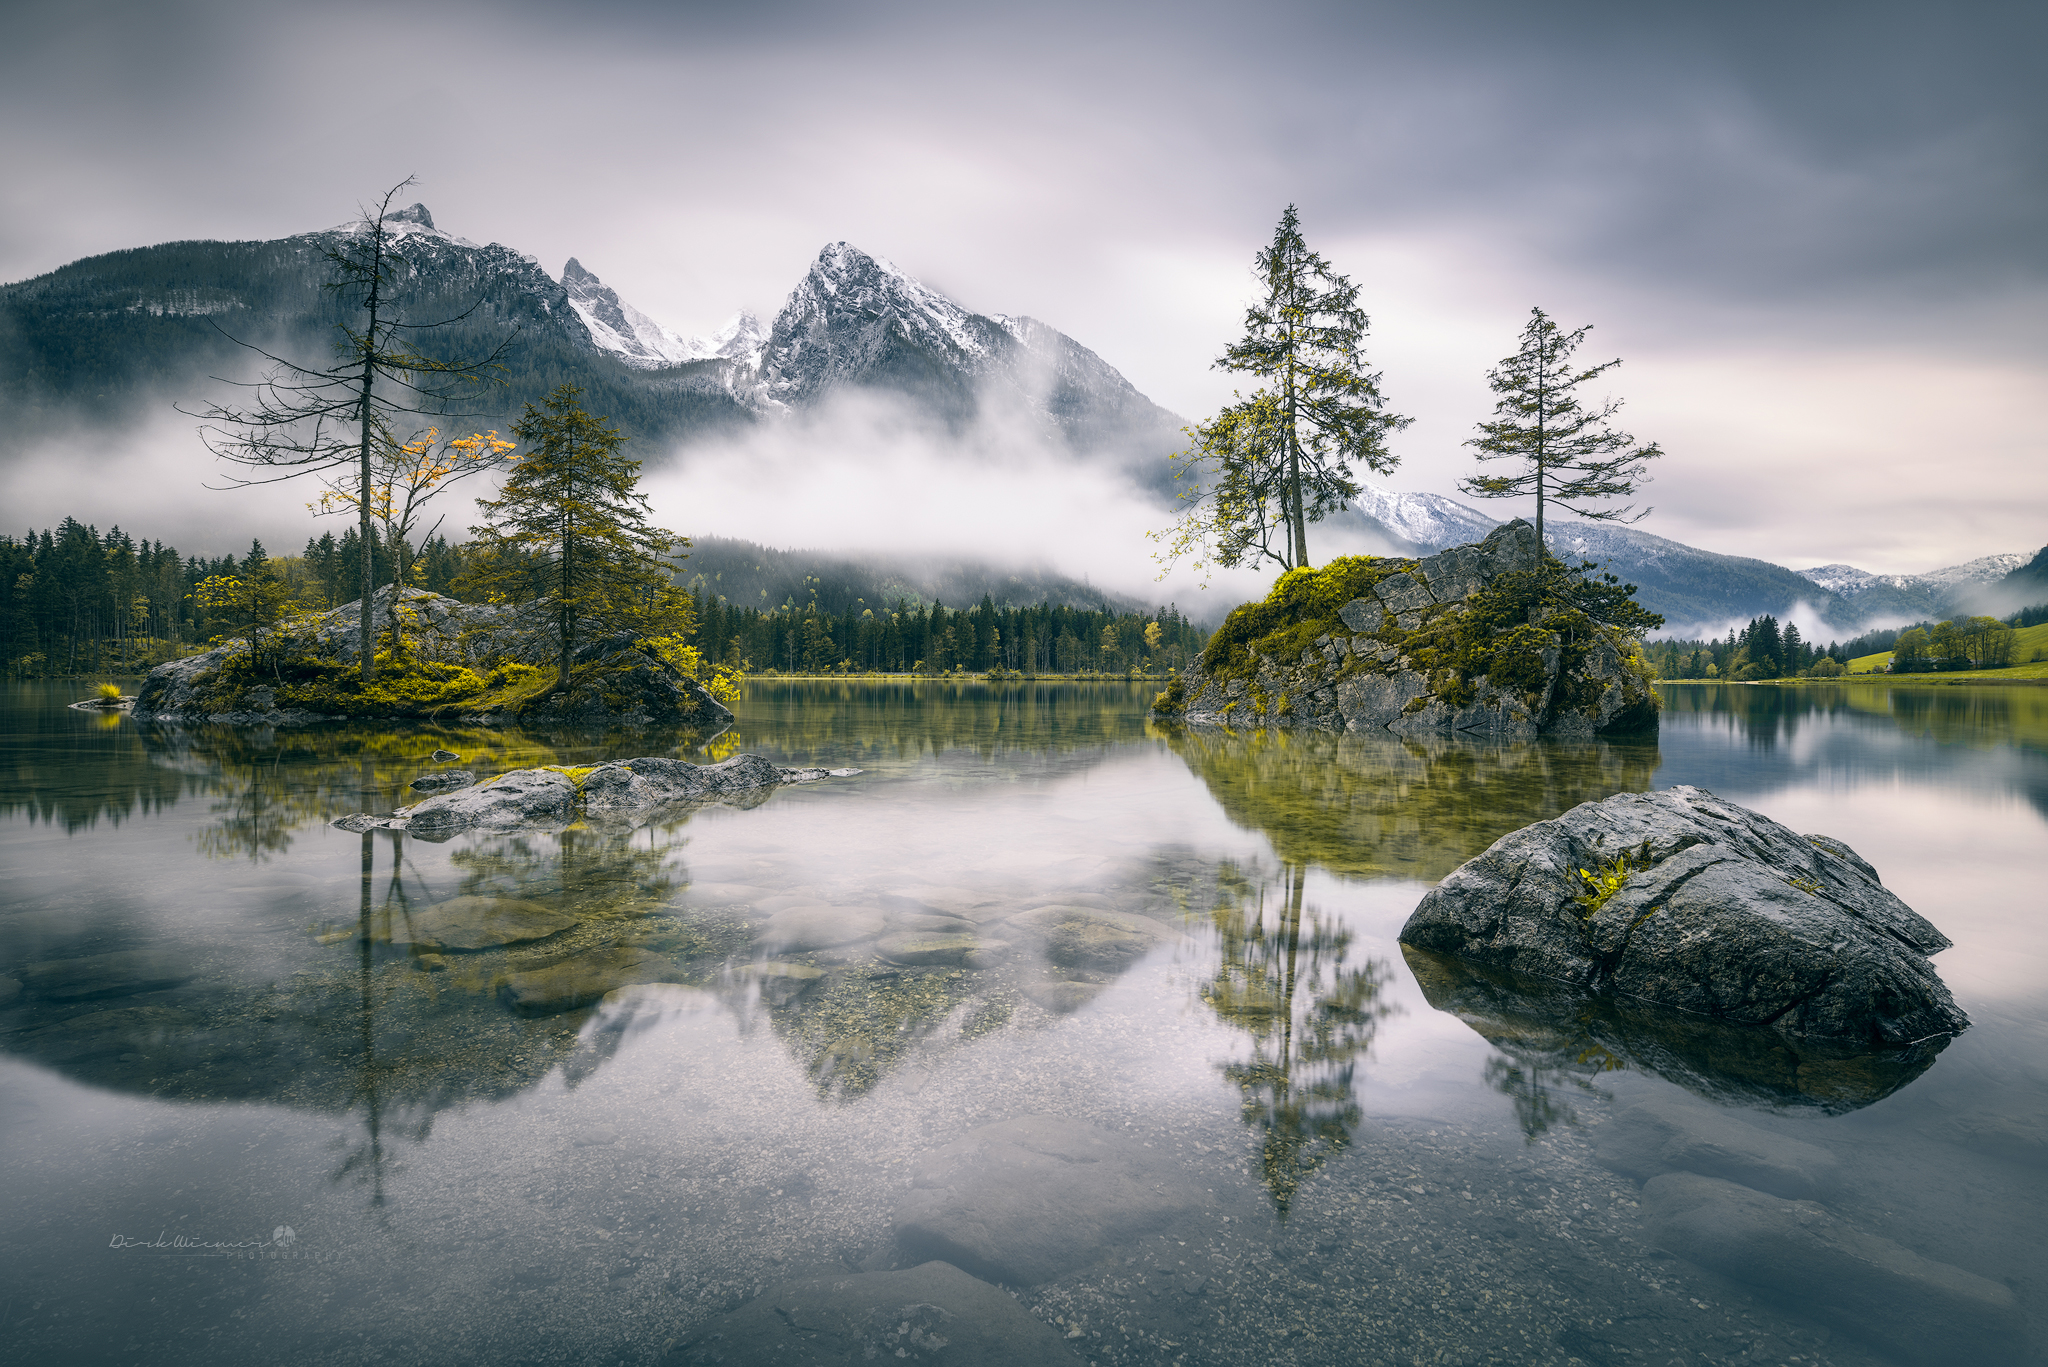 Rainy morning at Hintersee (Bavaria), Germany